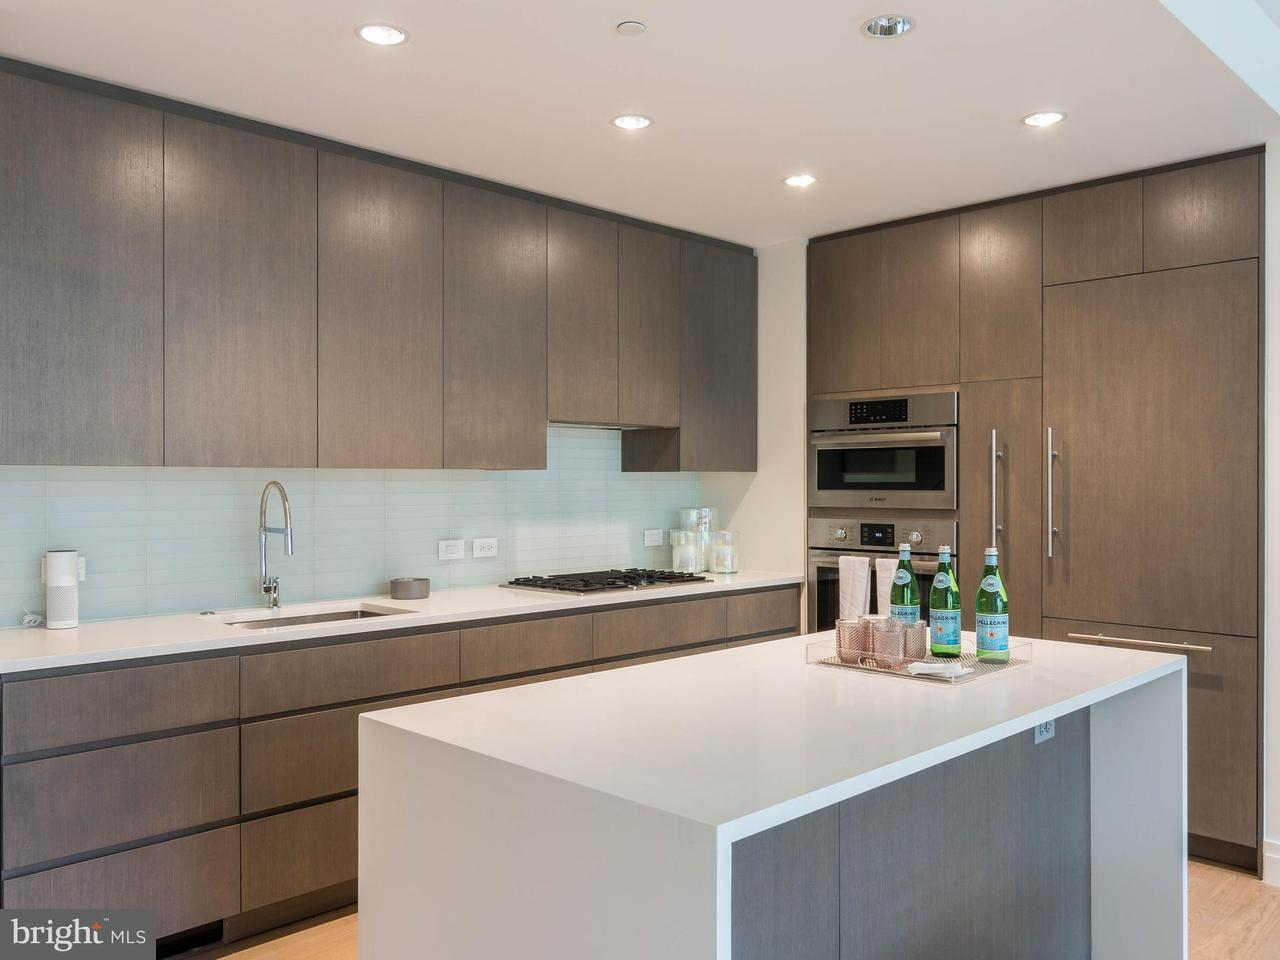 Additional photo for property listing at 2501 M St Nw #T-06 2501 M St Nw #T-06 华盛顿市, 哥伦比亚特区 20037 美国